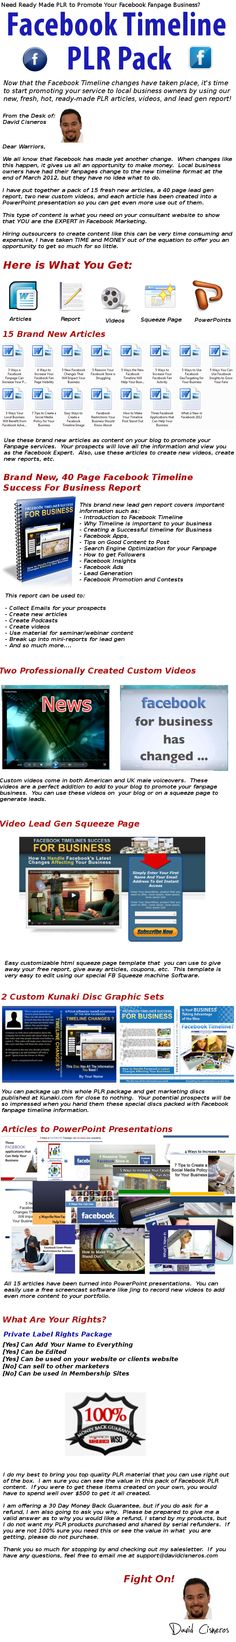 Facebook Timeline PLR Pack- Articles, Report, Videos Plus More....